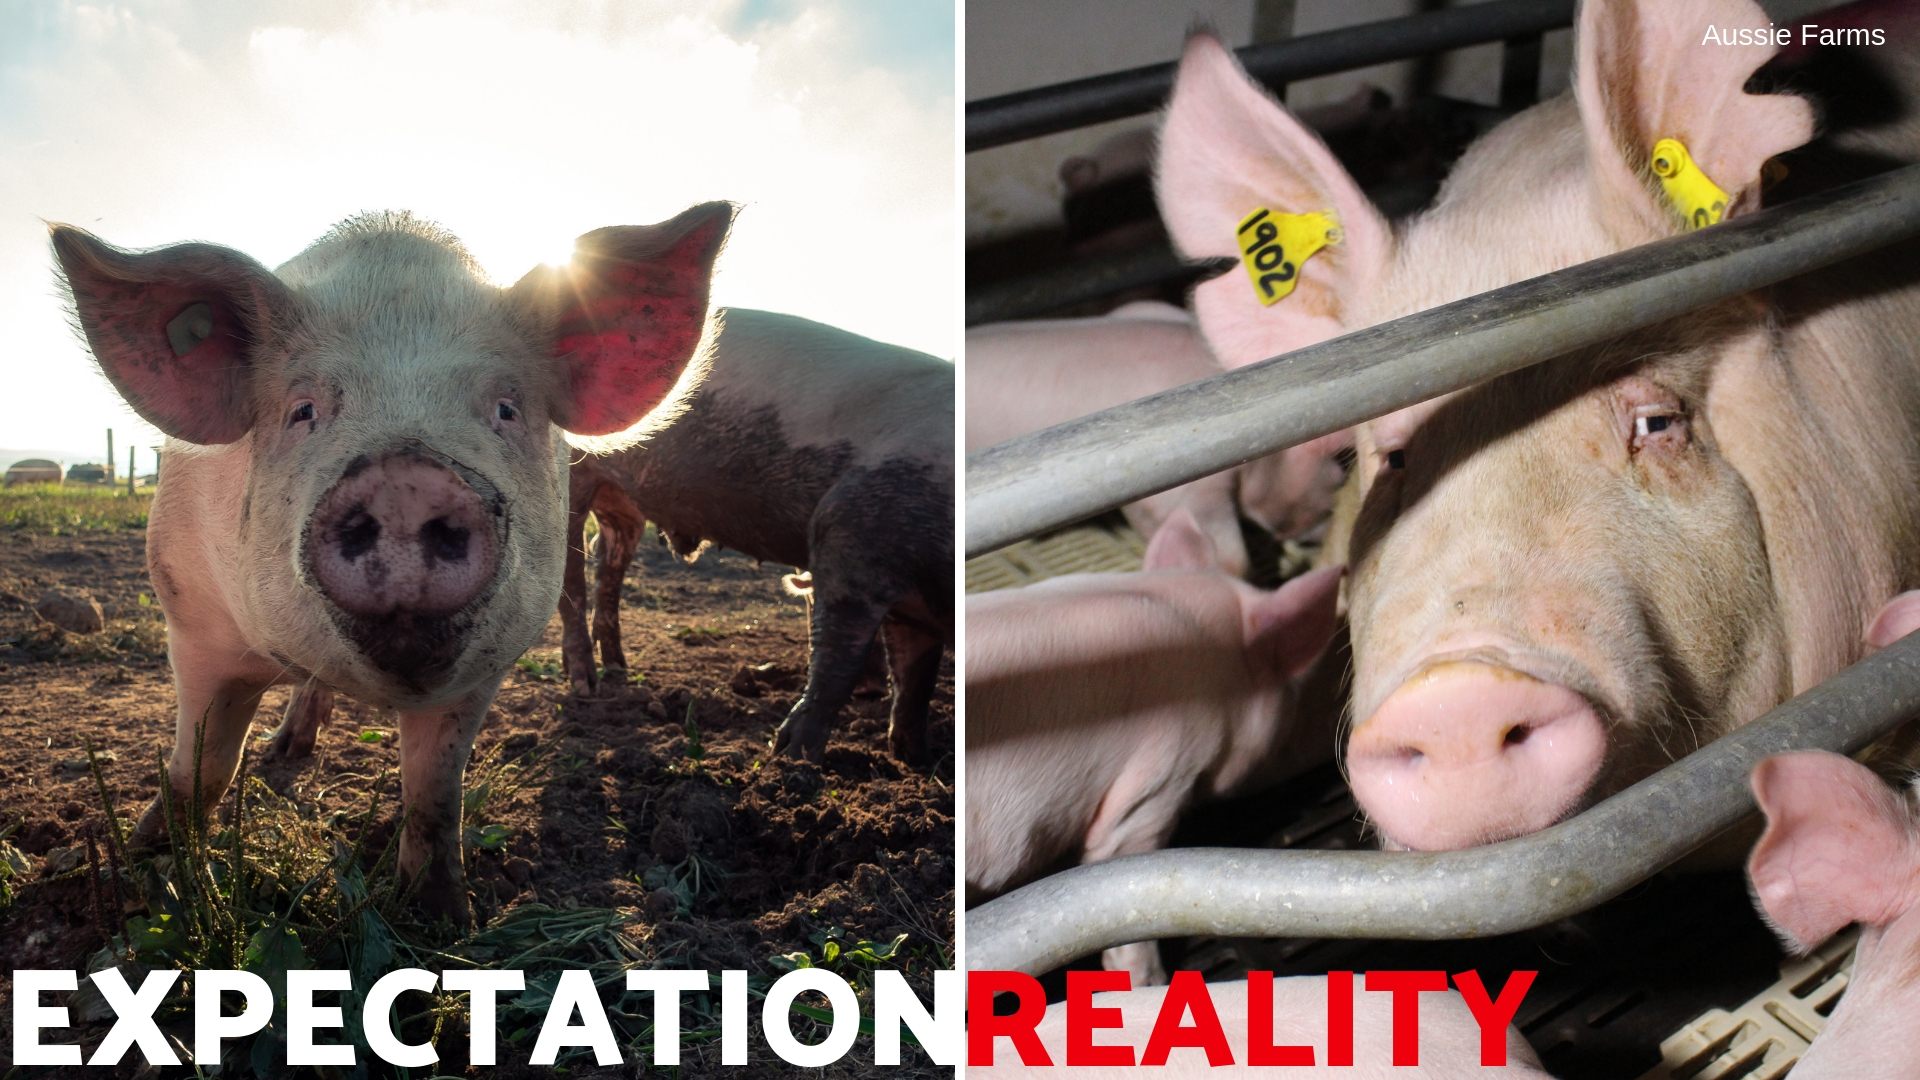 Pigs in farrowing crates